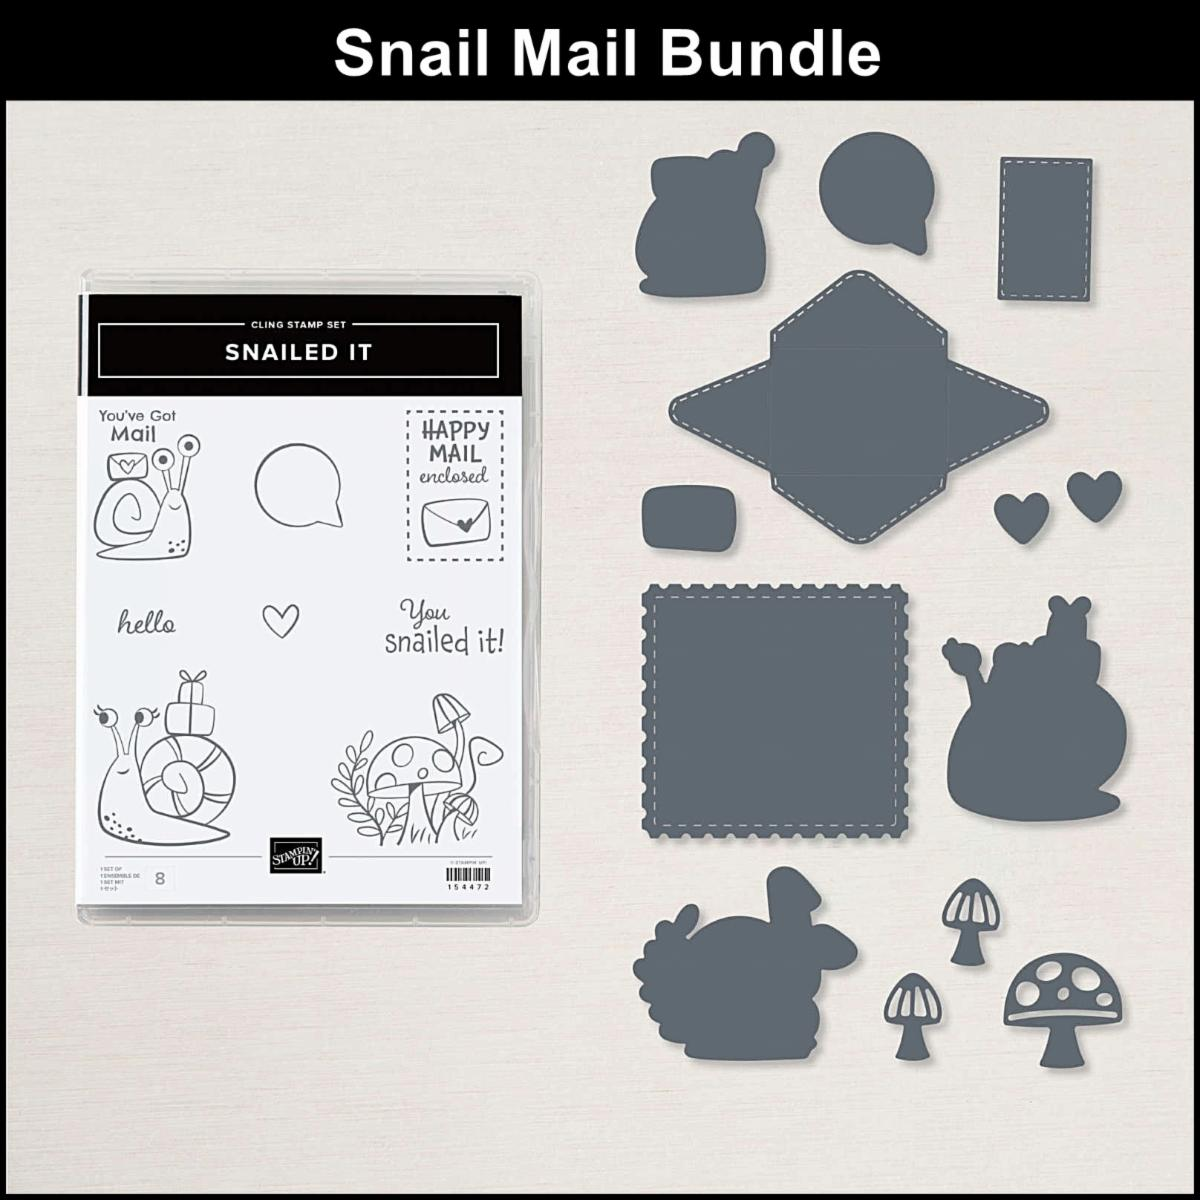 Delight someone's mailbox with happy mail in this adorable projects class To Go to make 4 cards & 2 treat holders featuring the Snail Mail bundle.